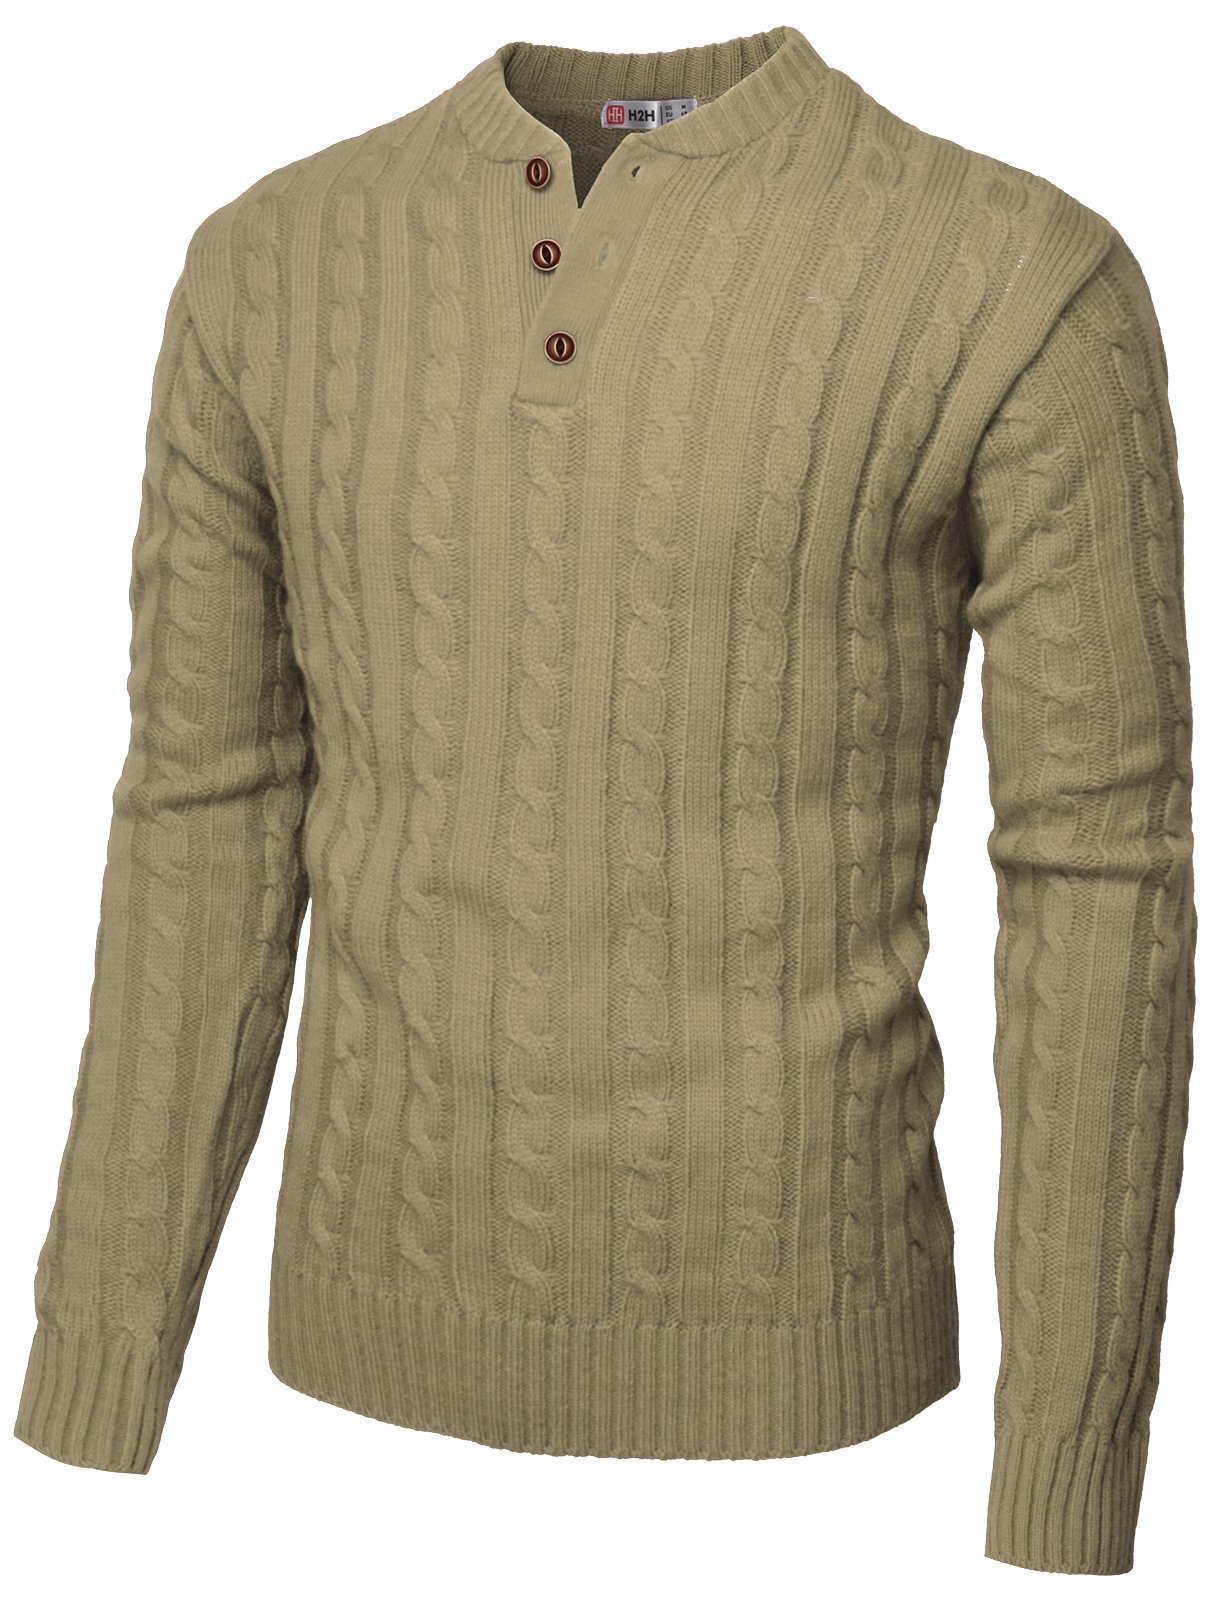 H2H Mens Slim Fit Henley Neck Knitted Pullover Sweater Beige US 2XL/Asia 3XL (CMOSWL029)